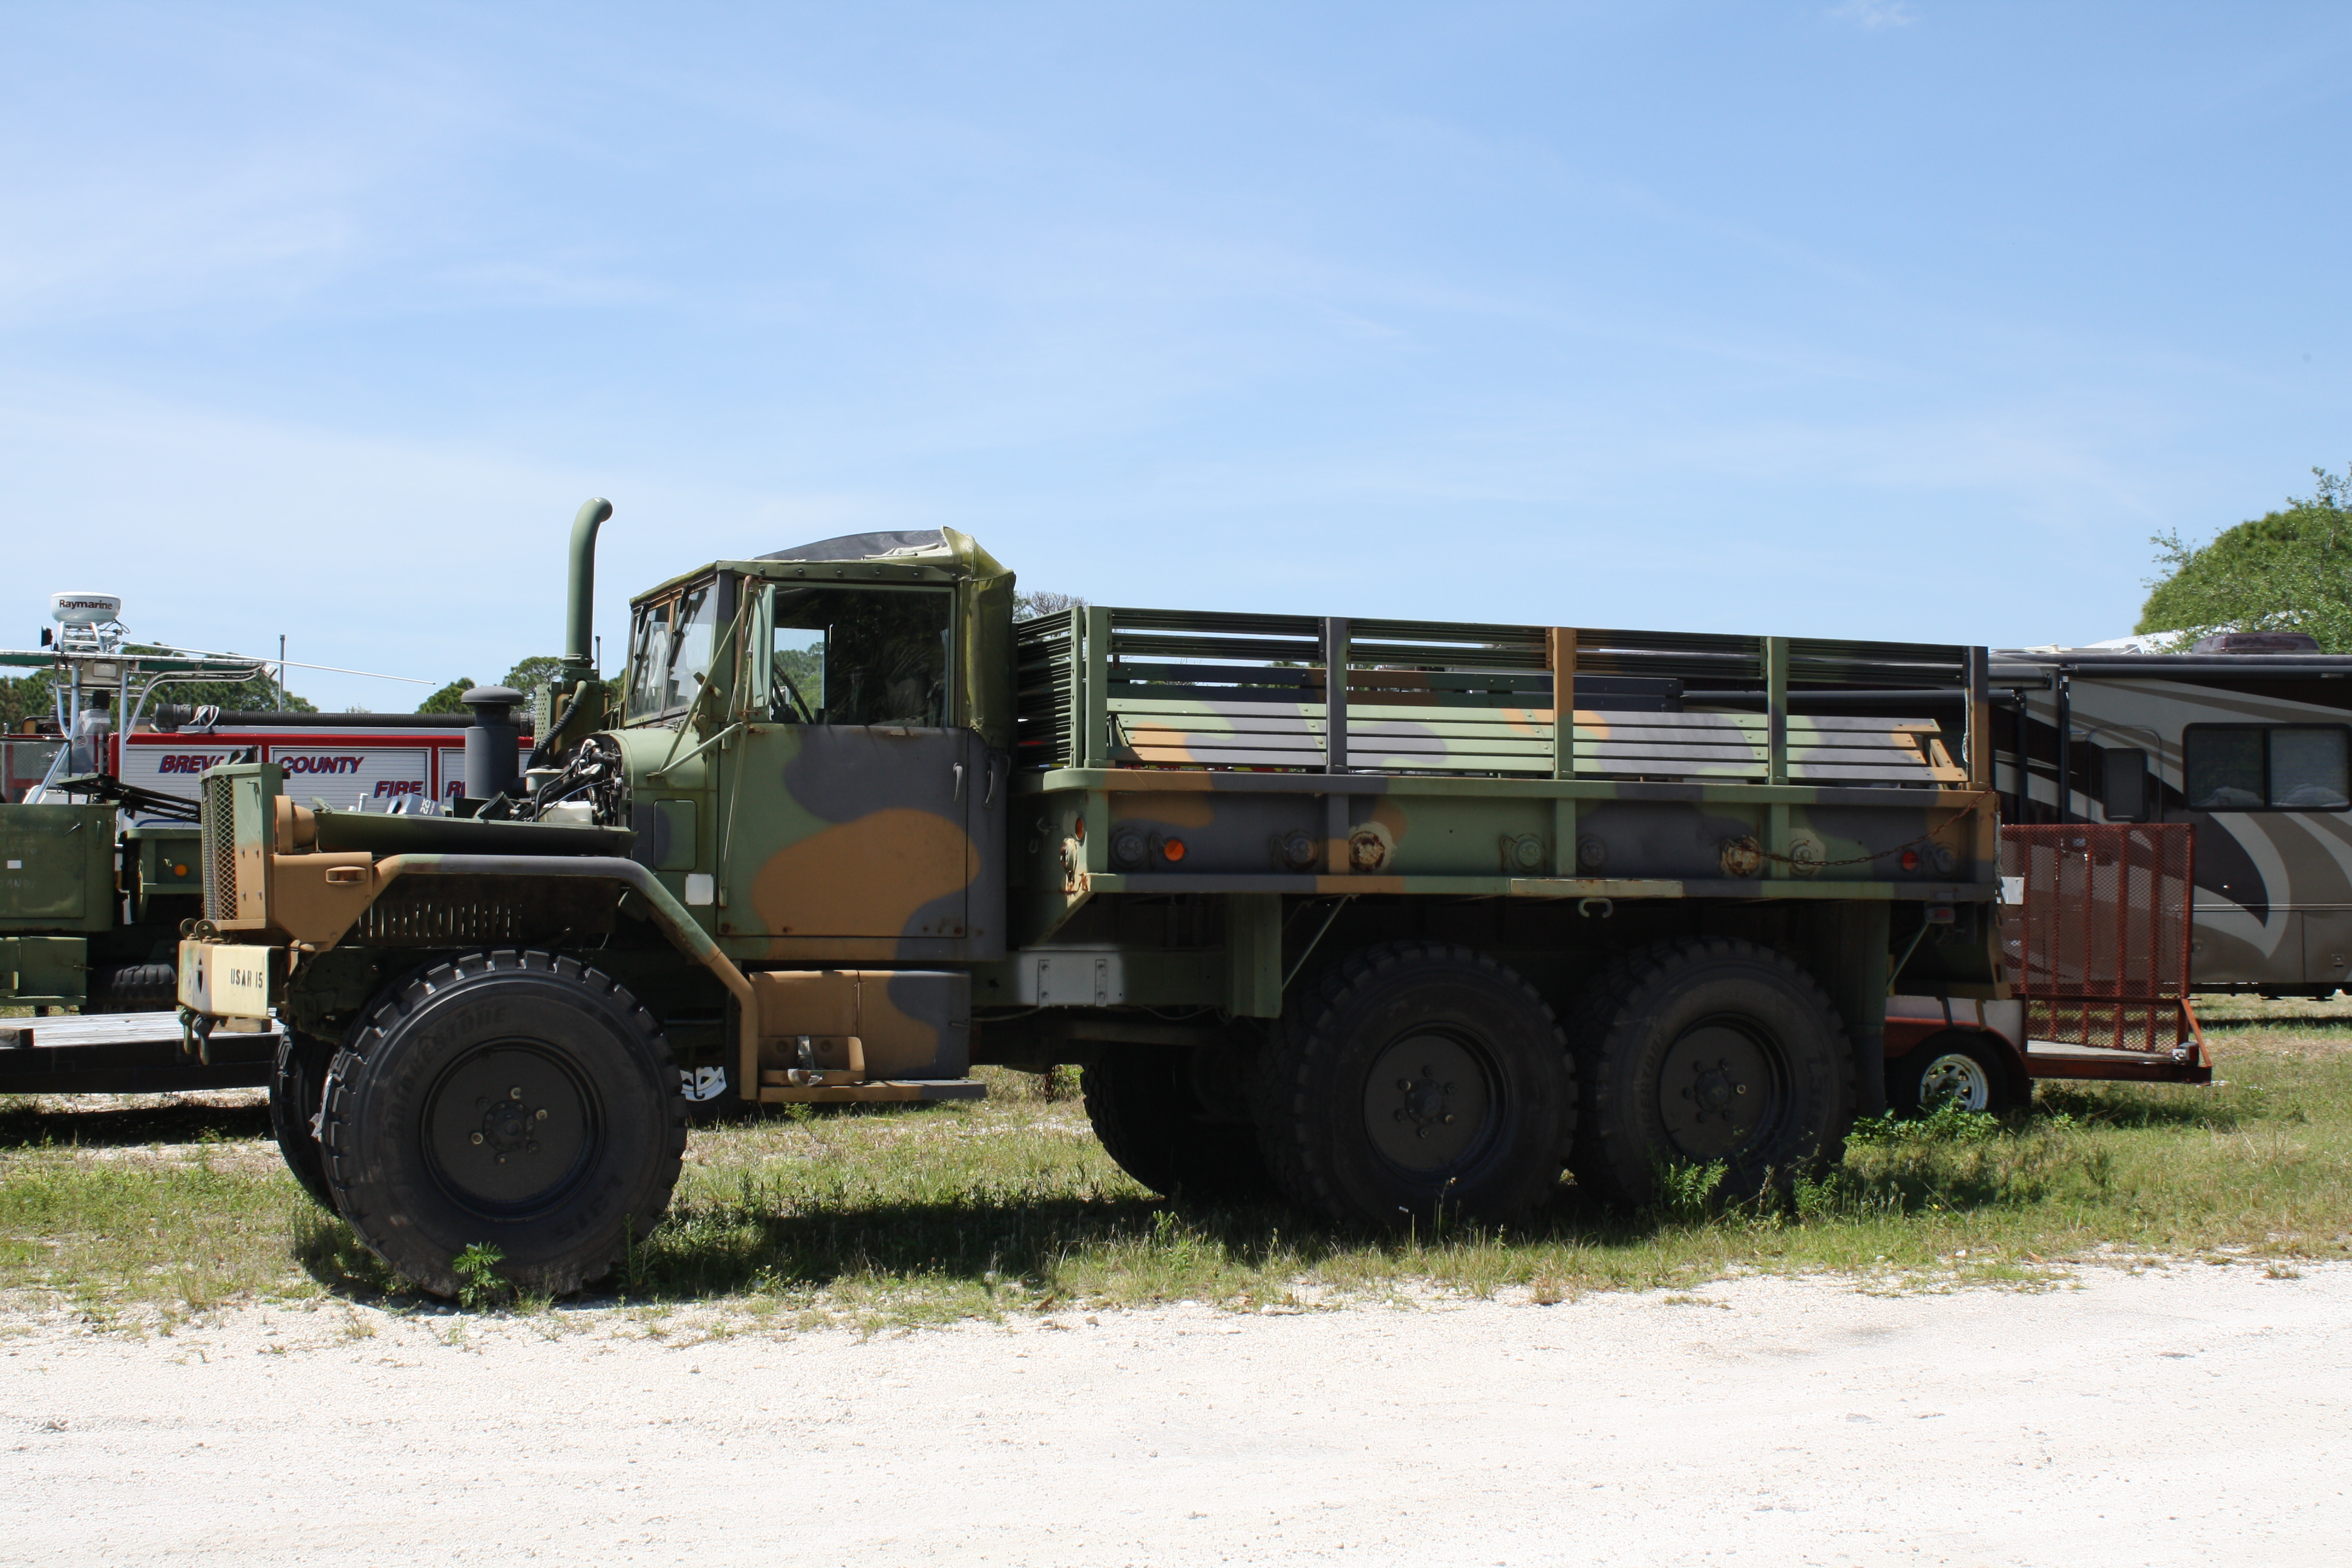 Military surplus truck